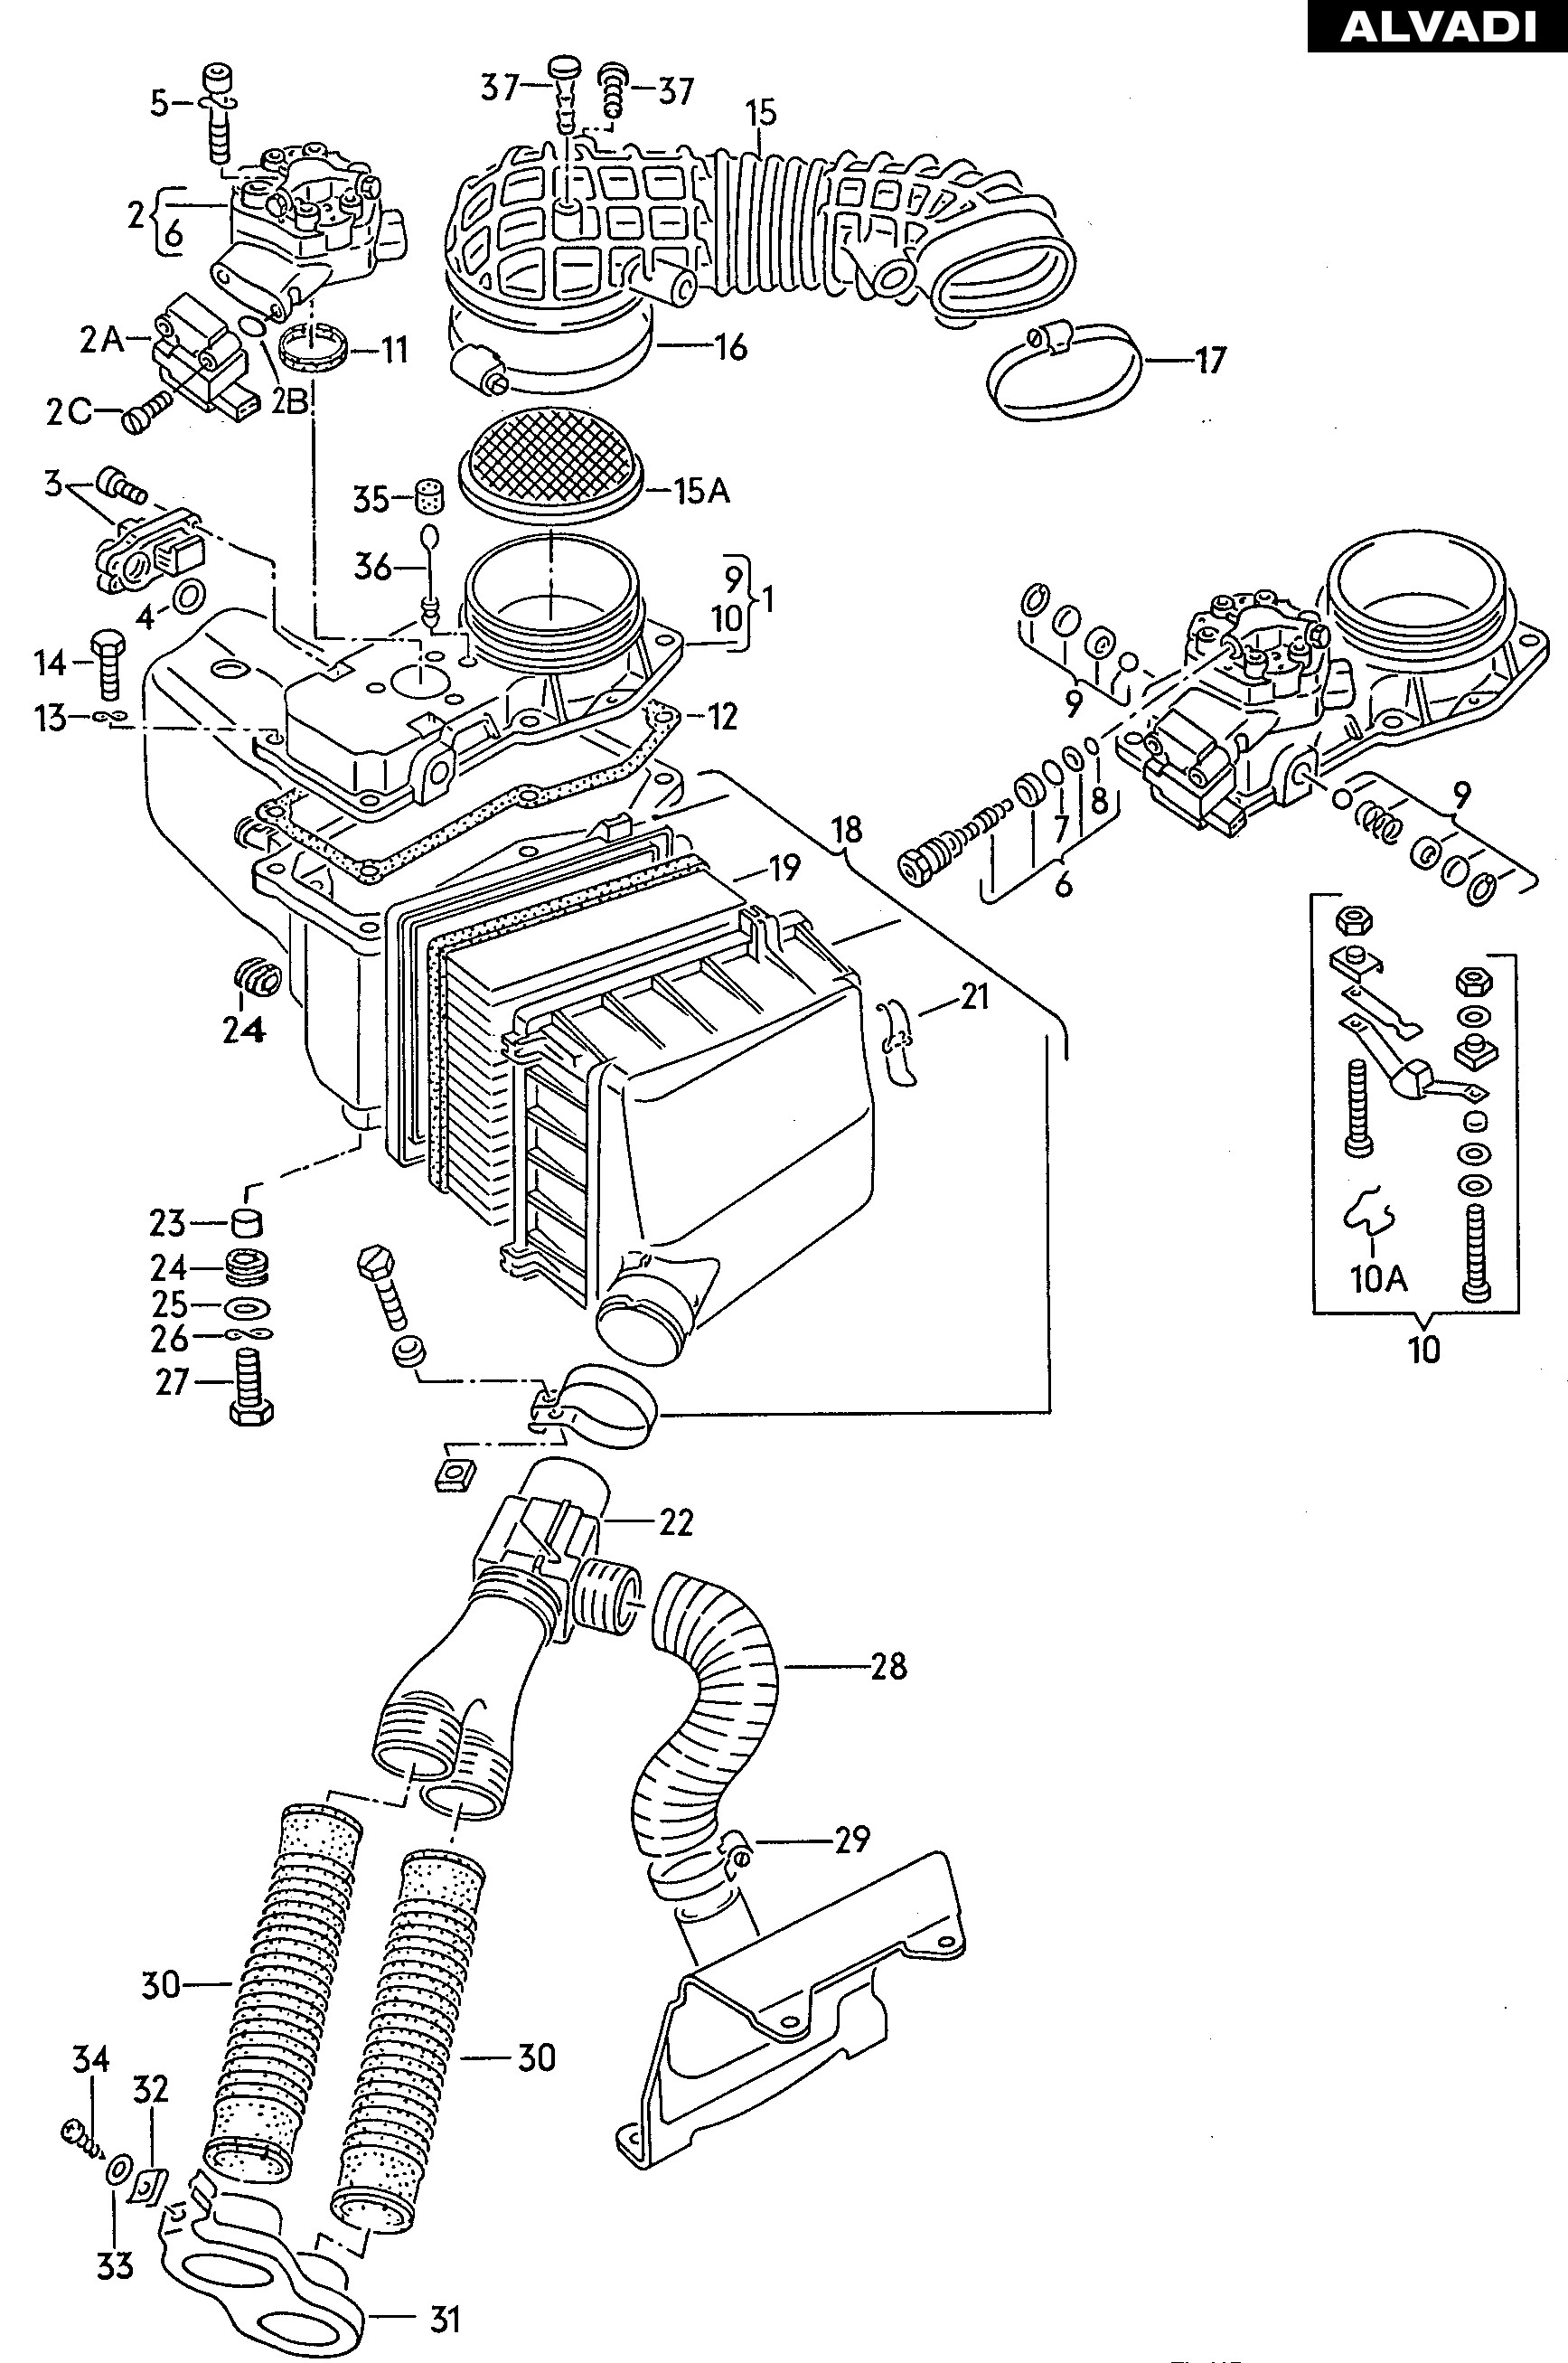 Car Radiator Parts Diagram Audi Mass Air Flow Sensor Fuel Metering Valve Air Cleaner with Of Car Radiator Parts Diagram